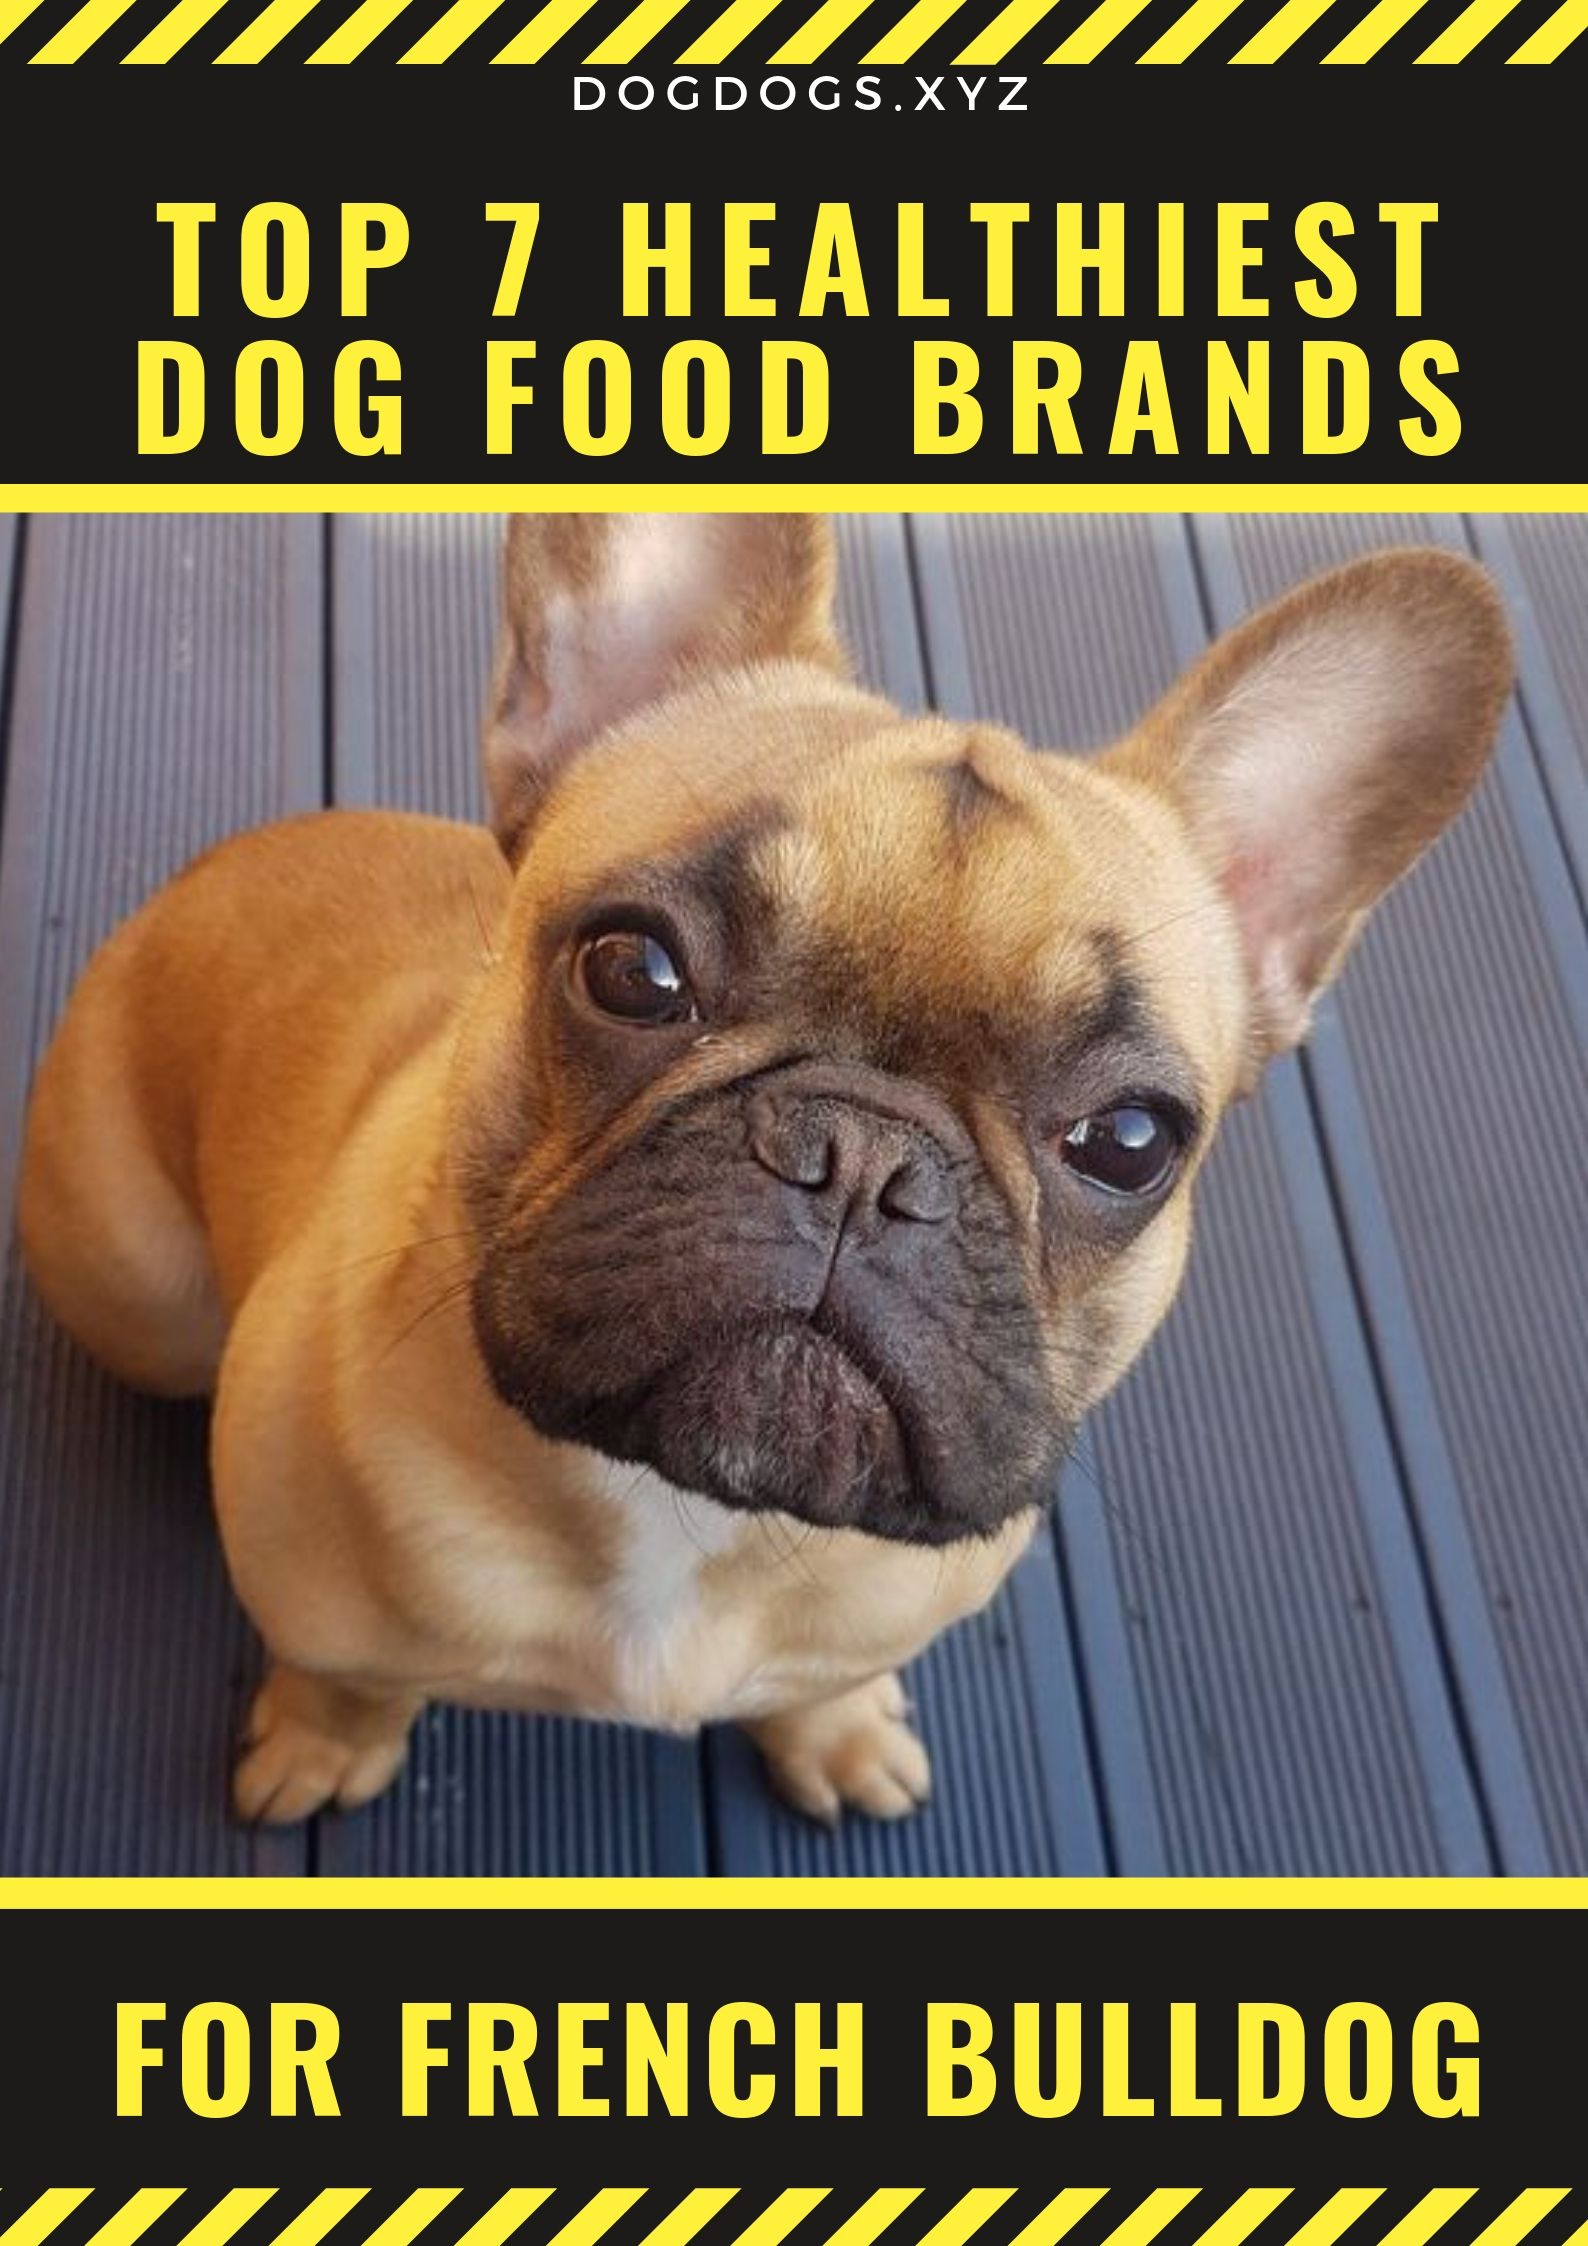 Our French Bulldog Are Our Family Members Too This Is One Of The